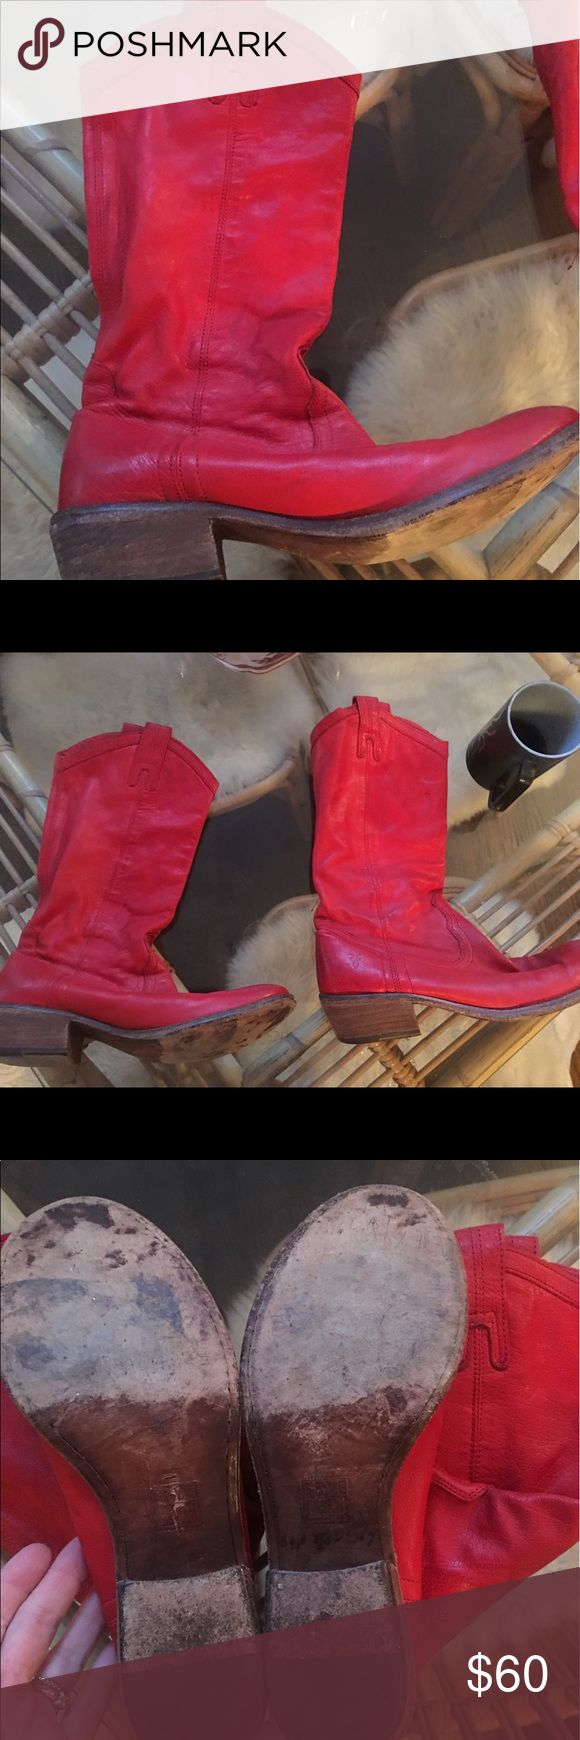 Frye red cowboy boots These are worn twice... still beautiful. Frye Shoes Heeled Boots